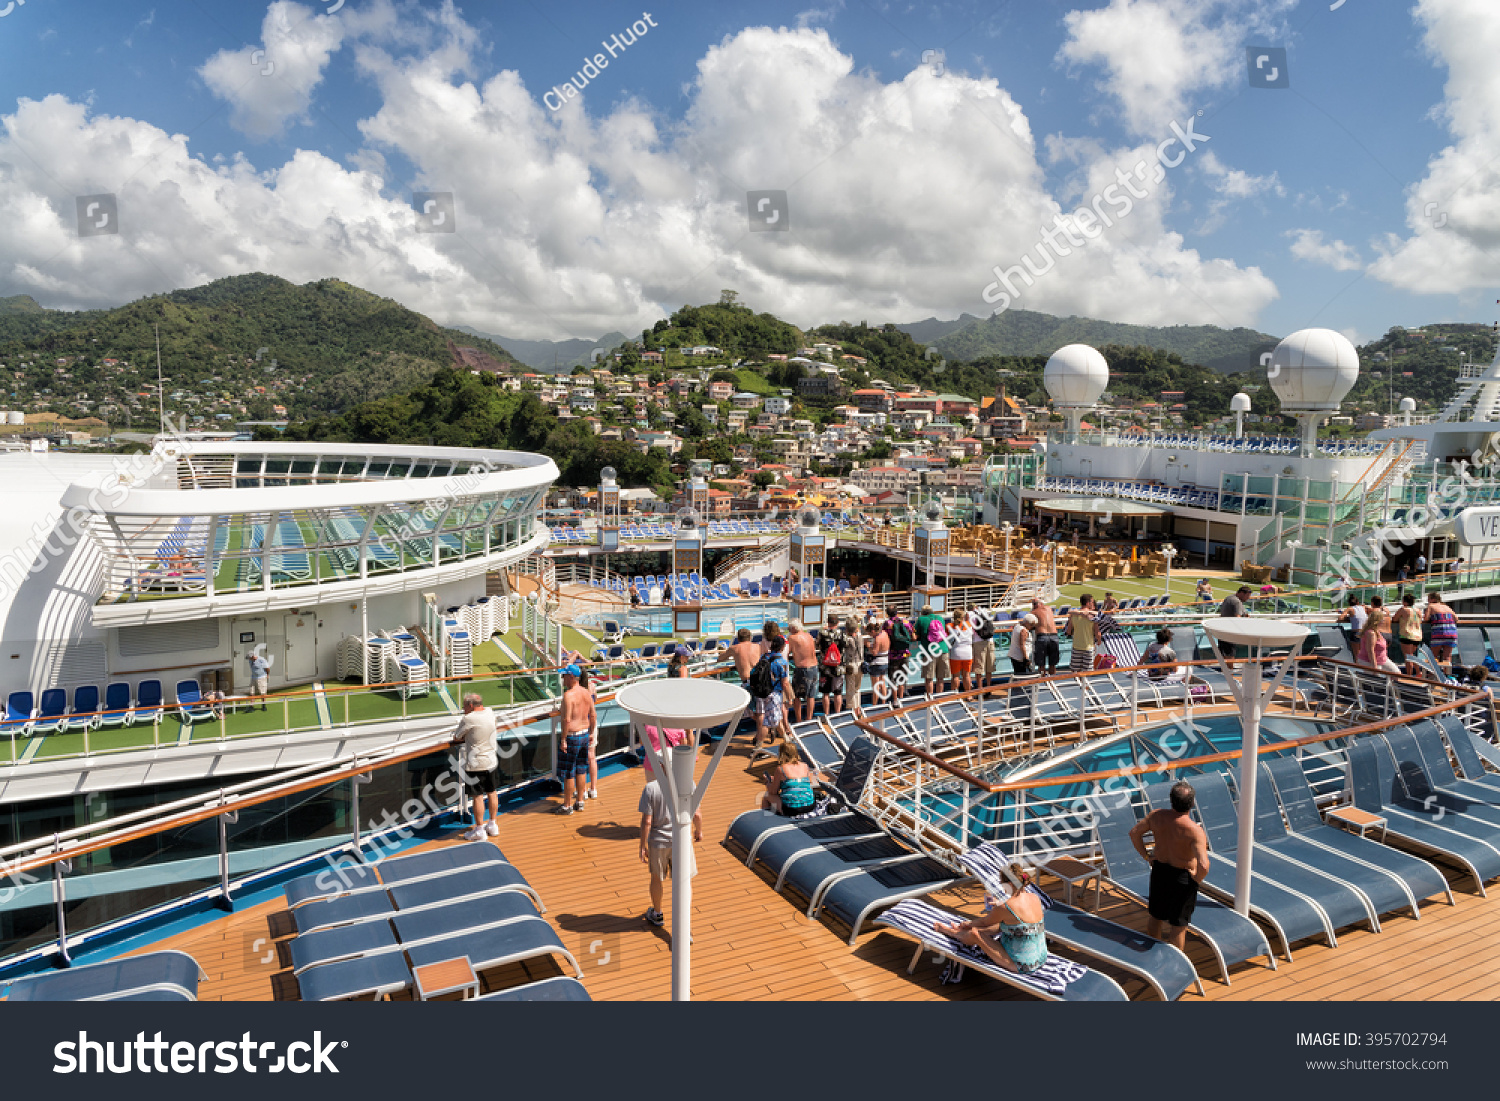 ST. GEORGE'S, GRENADA - FEBRUARY 2, 2015: Two large cruise ships full of tourists dock in Saint George's, Grenada which is a very popular tourist destination in winter.